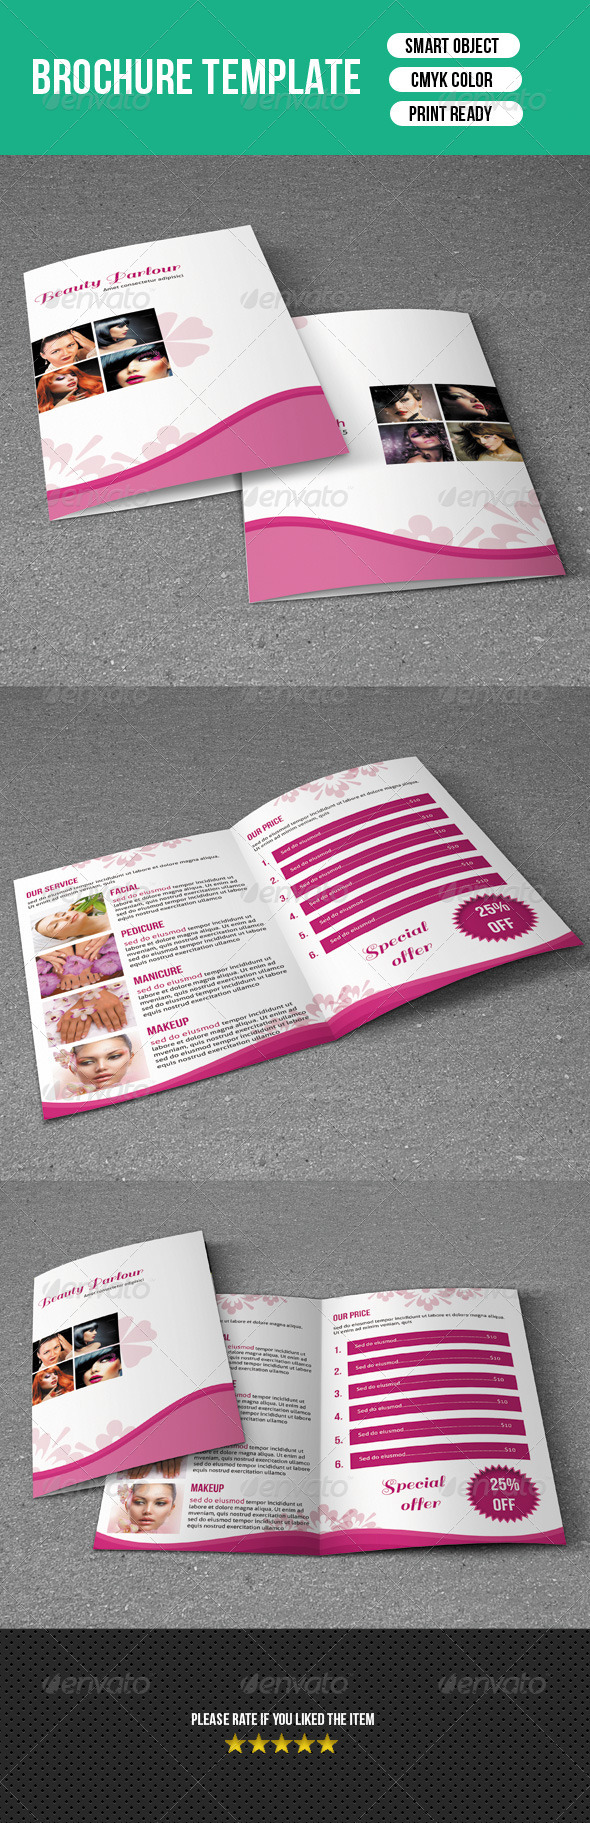 Trifold Brochure-Beauty Salon